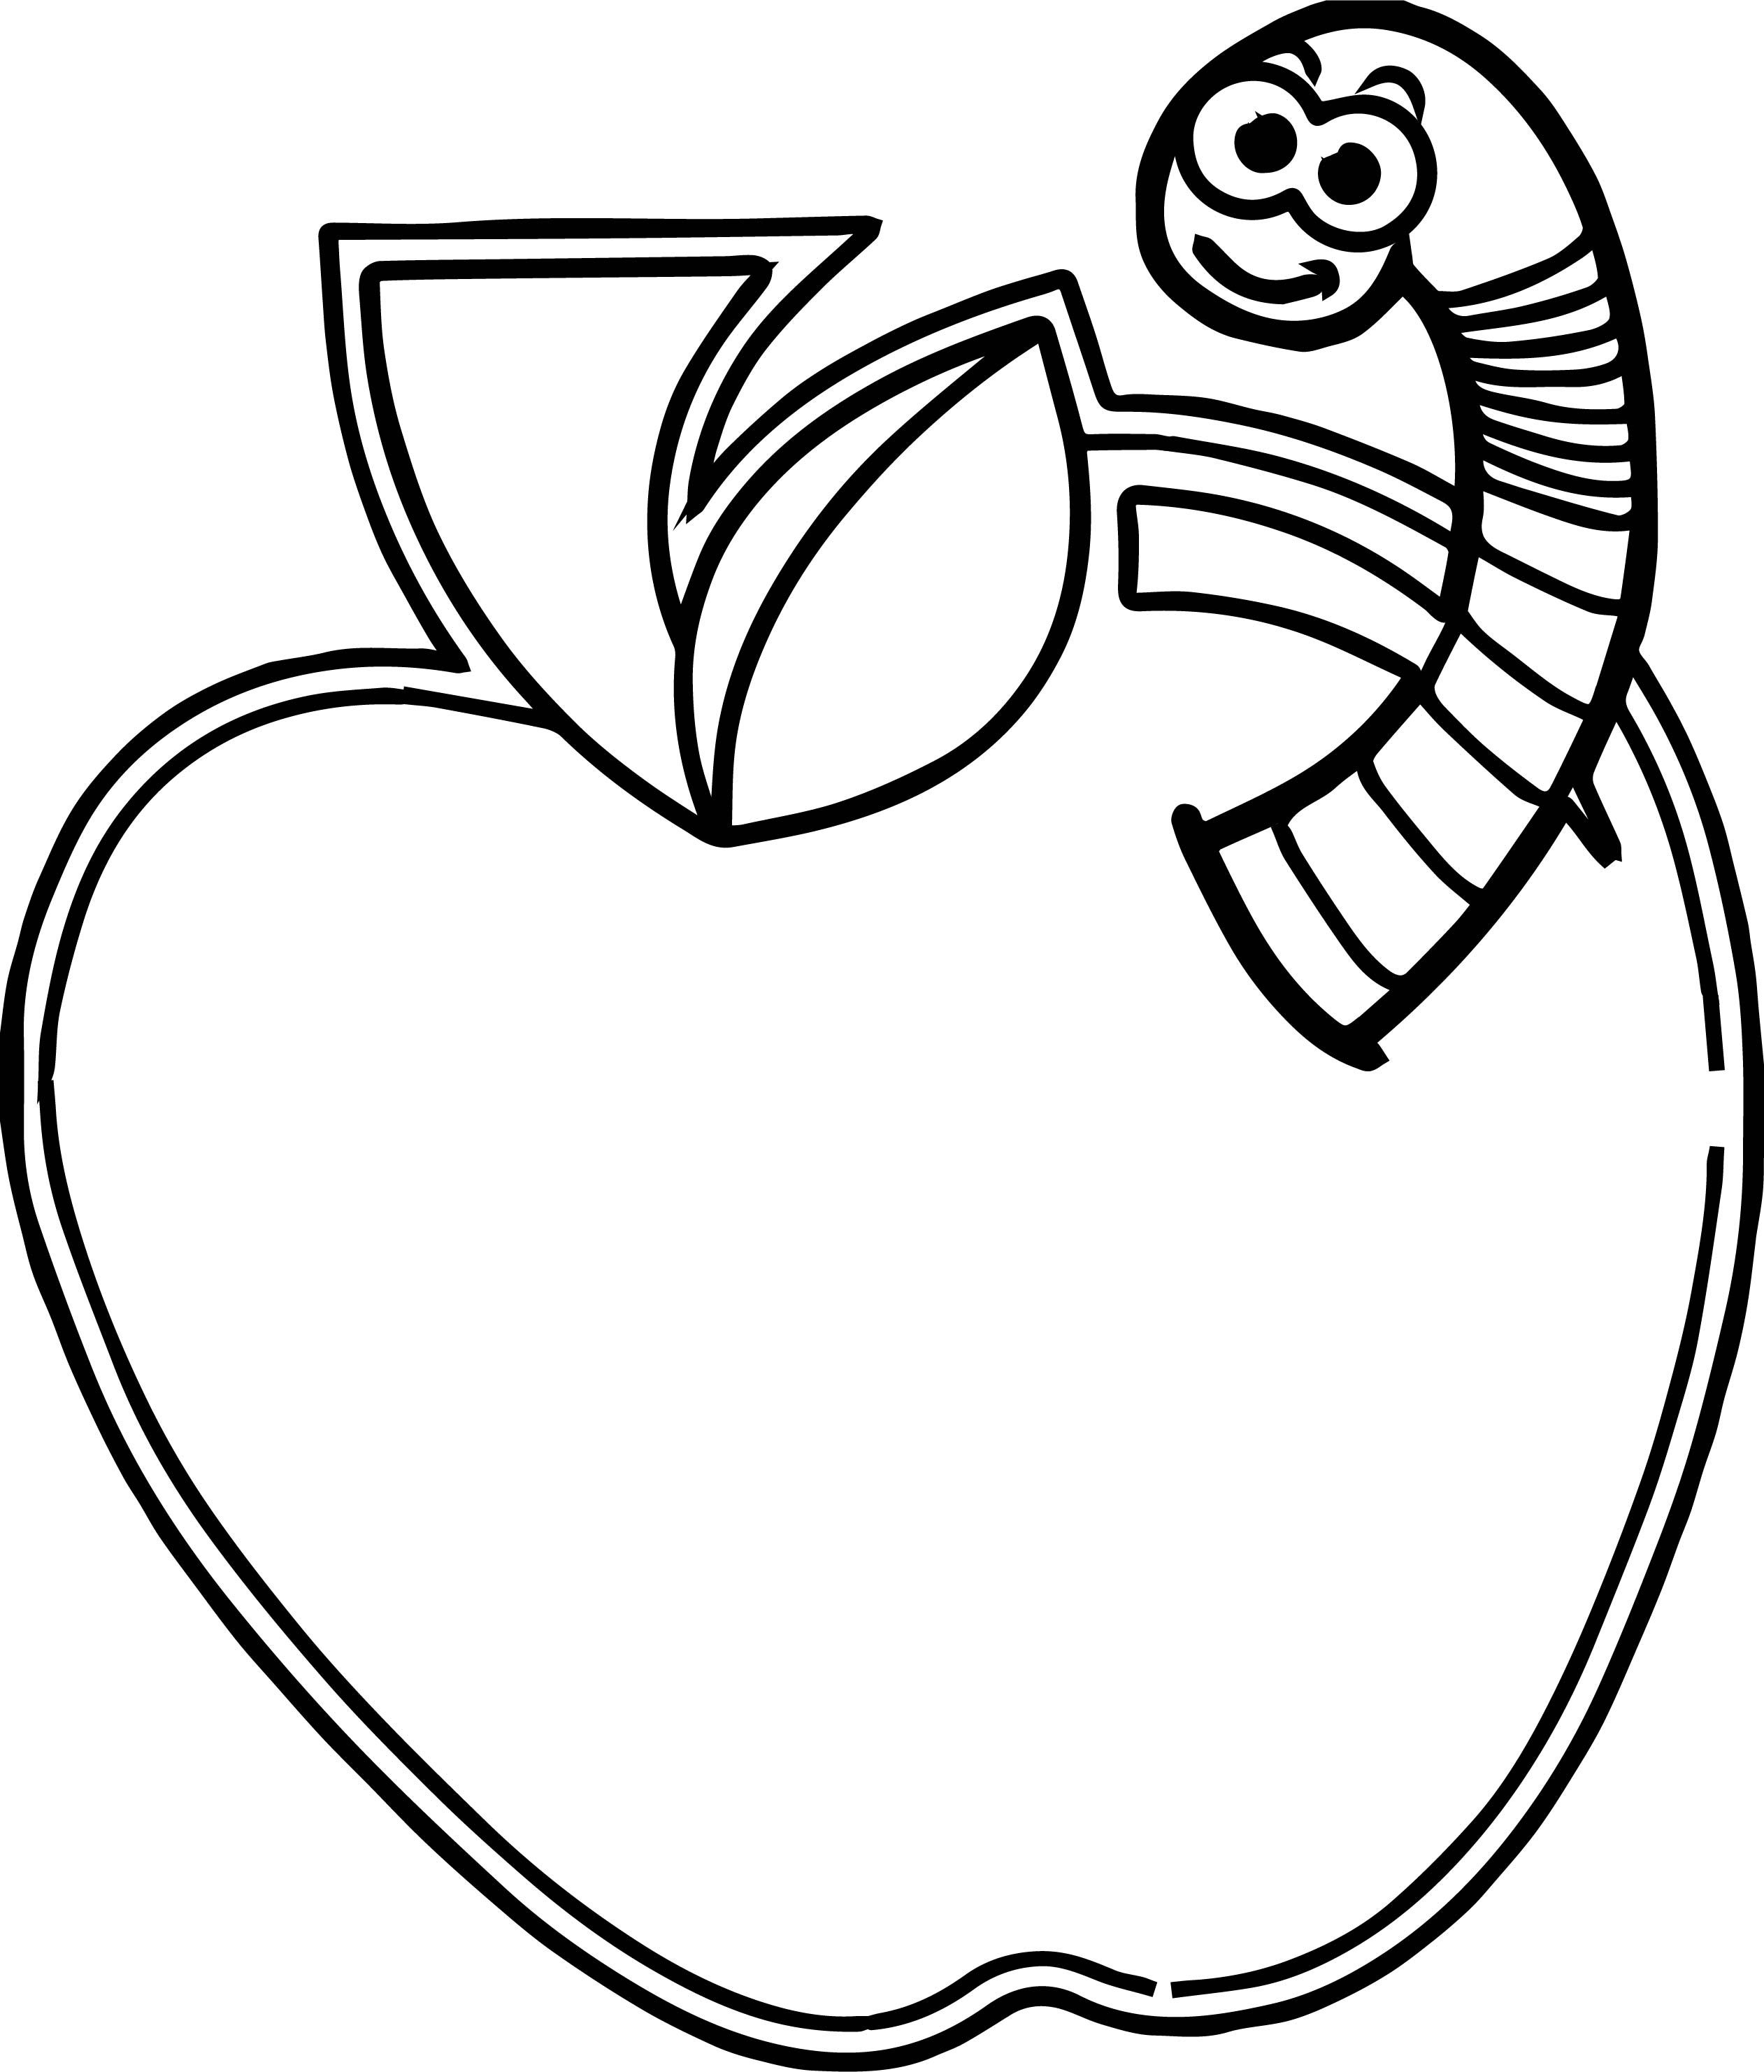 Cool Apple Worm Coloring Pages Tree Coloring Page Coloring